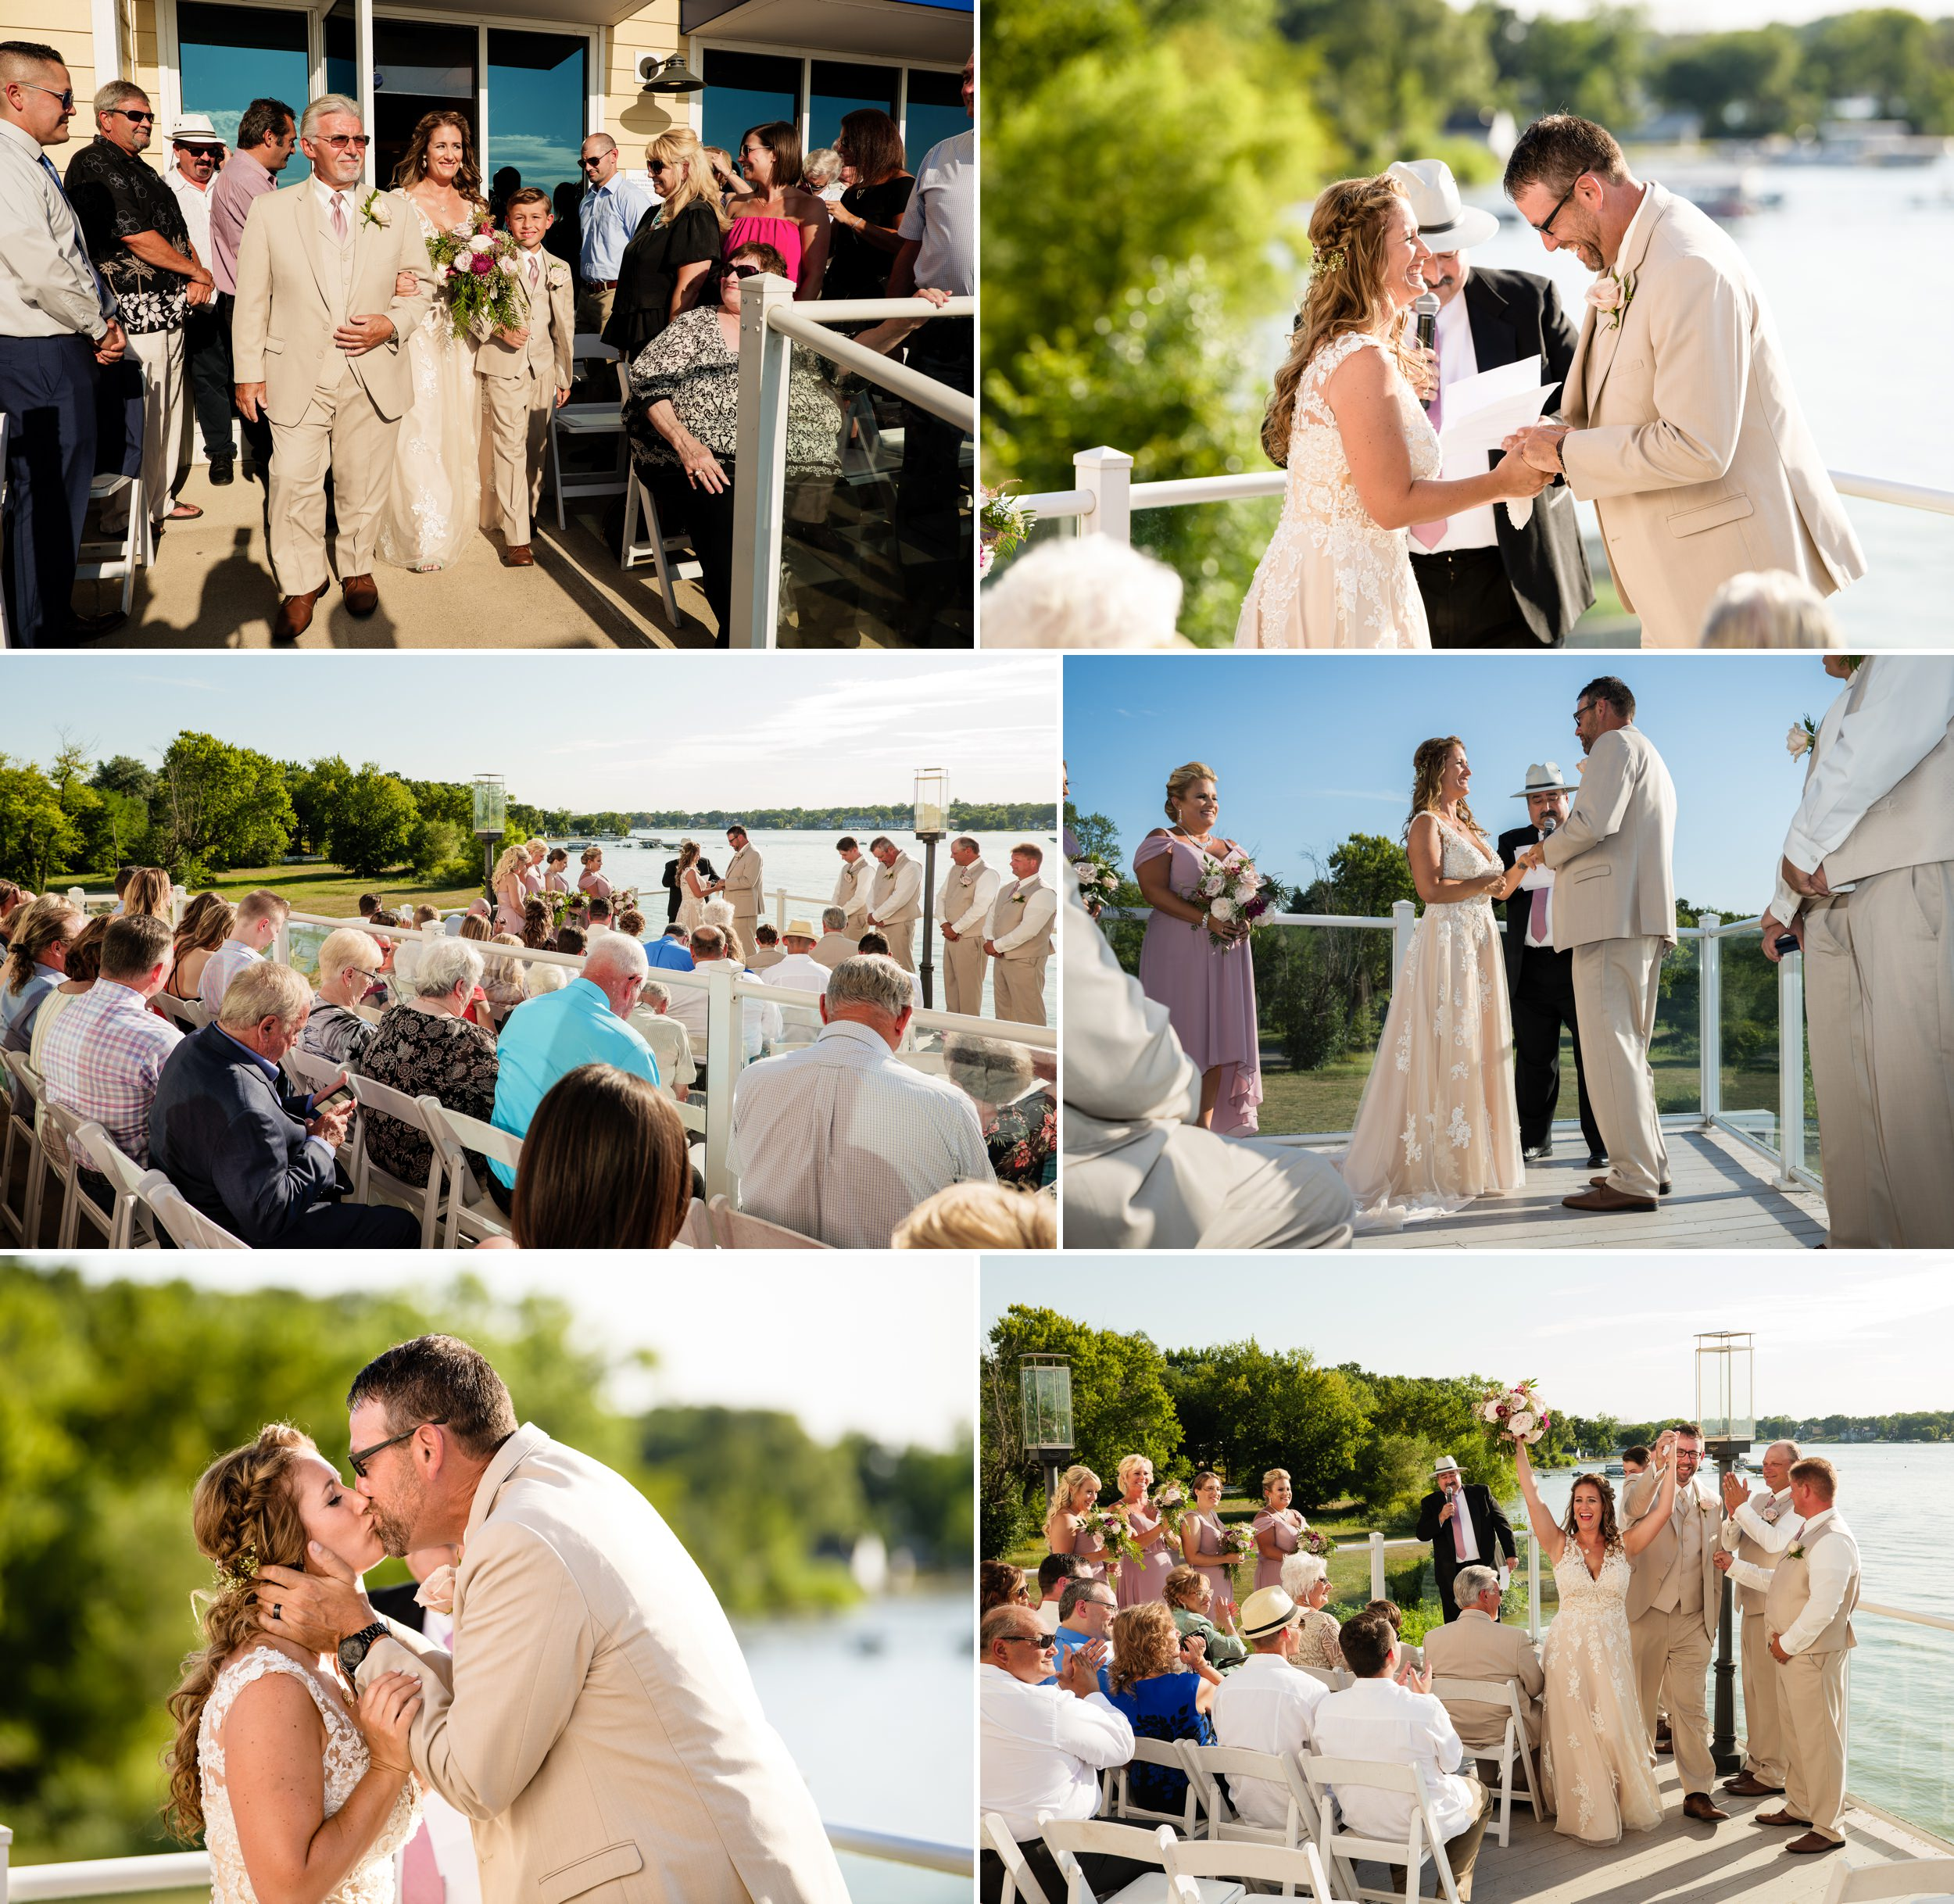 Summer wedding ceremony on the outdoor deck of Lighthouse Restaurant.